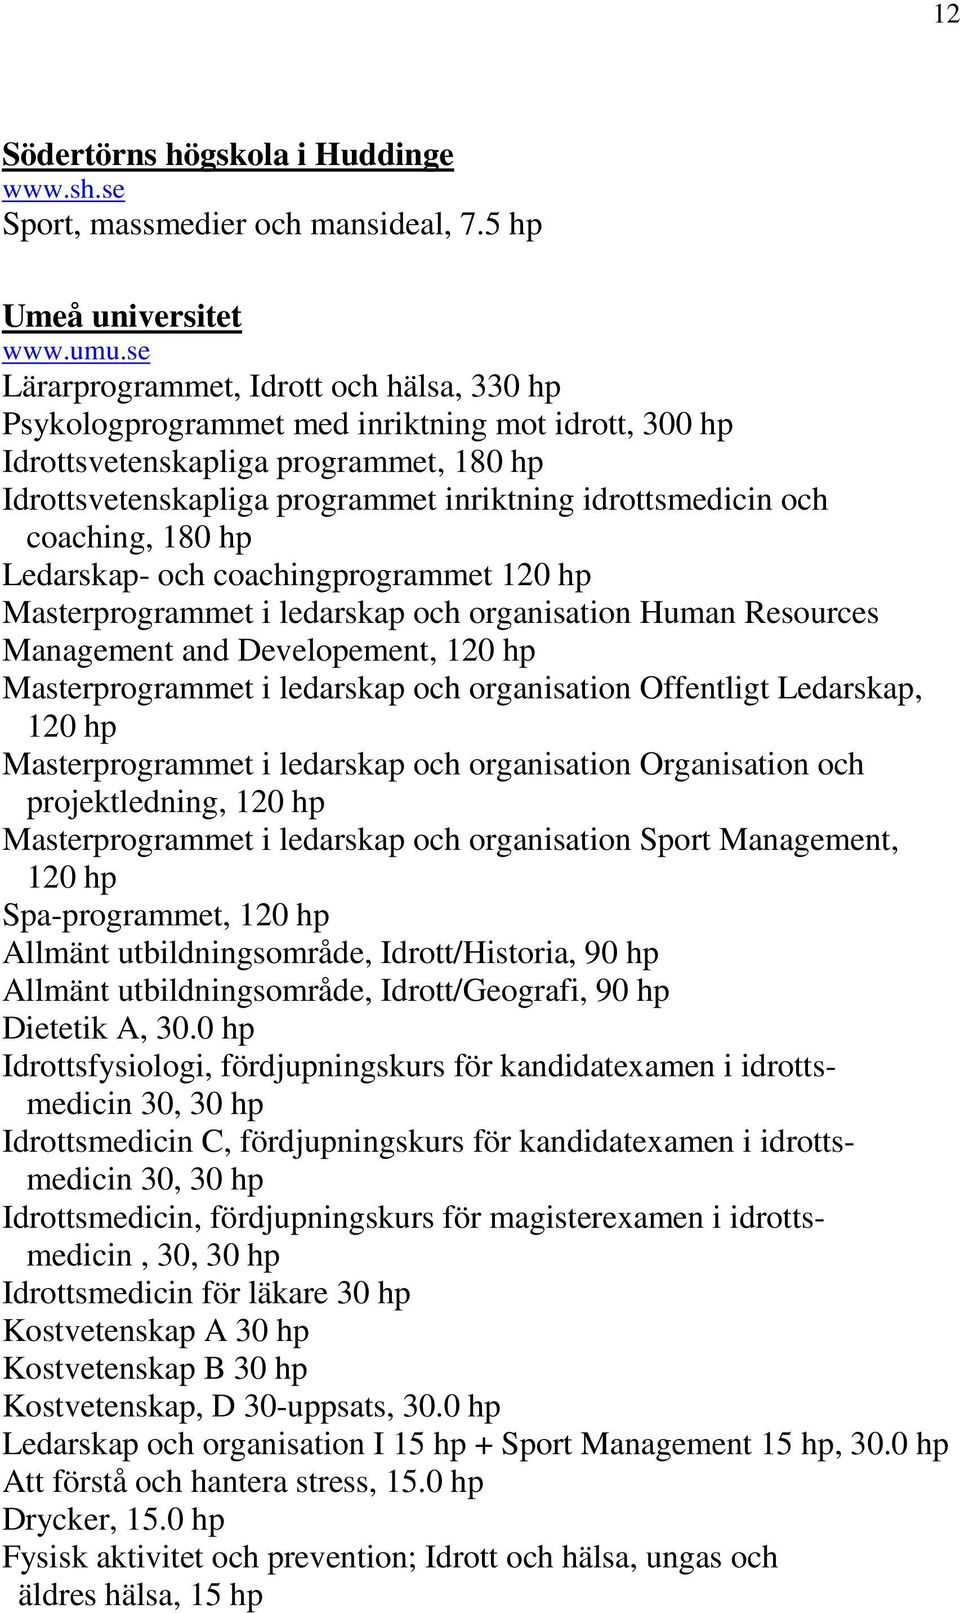 coaching, 180 hp Ledarskap- och coachingprogrammet 120 hp Masterprogrammet i ledarskap och organisation Human Resources Management and Developement, 120 hp Masterprogrammet i ledarskap och